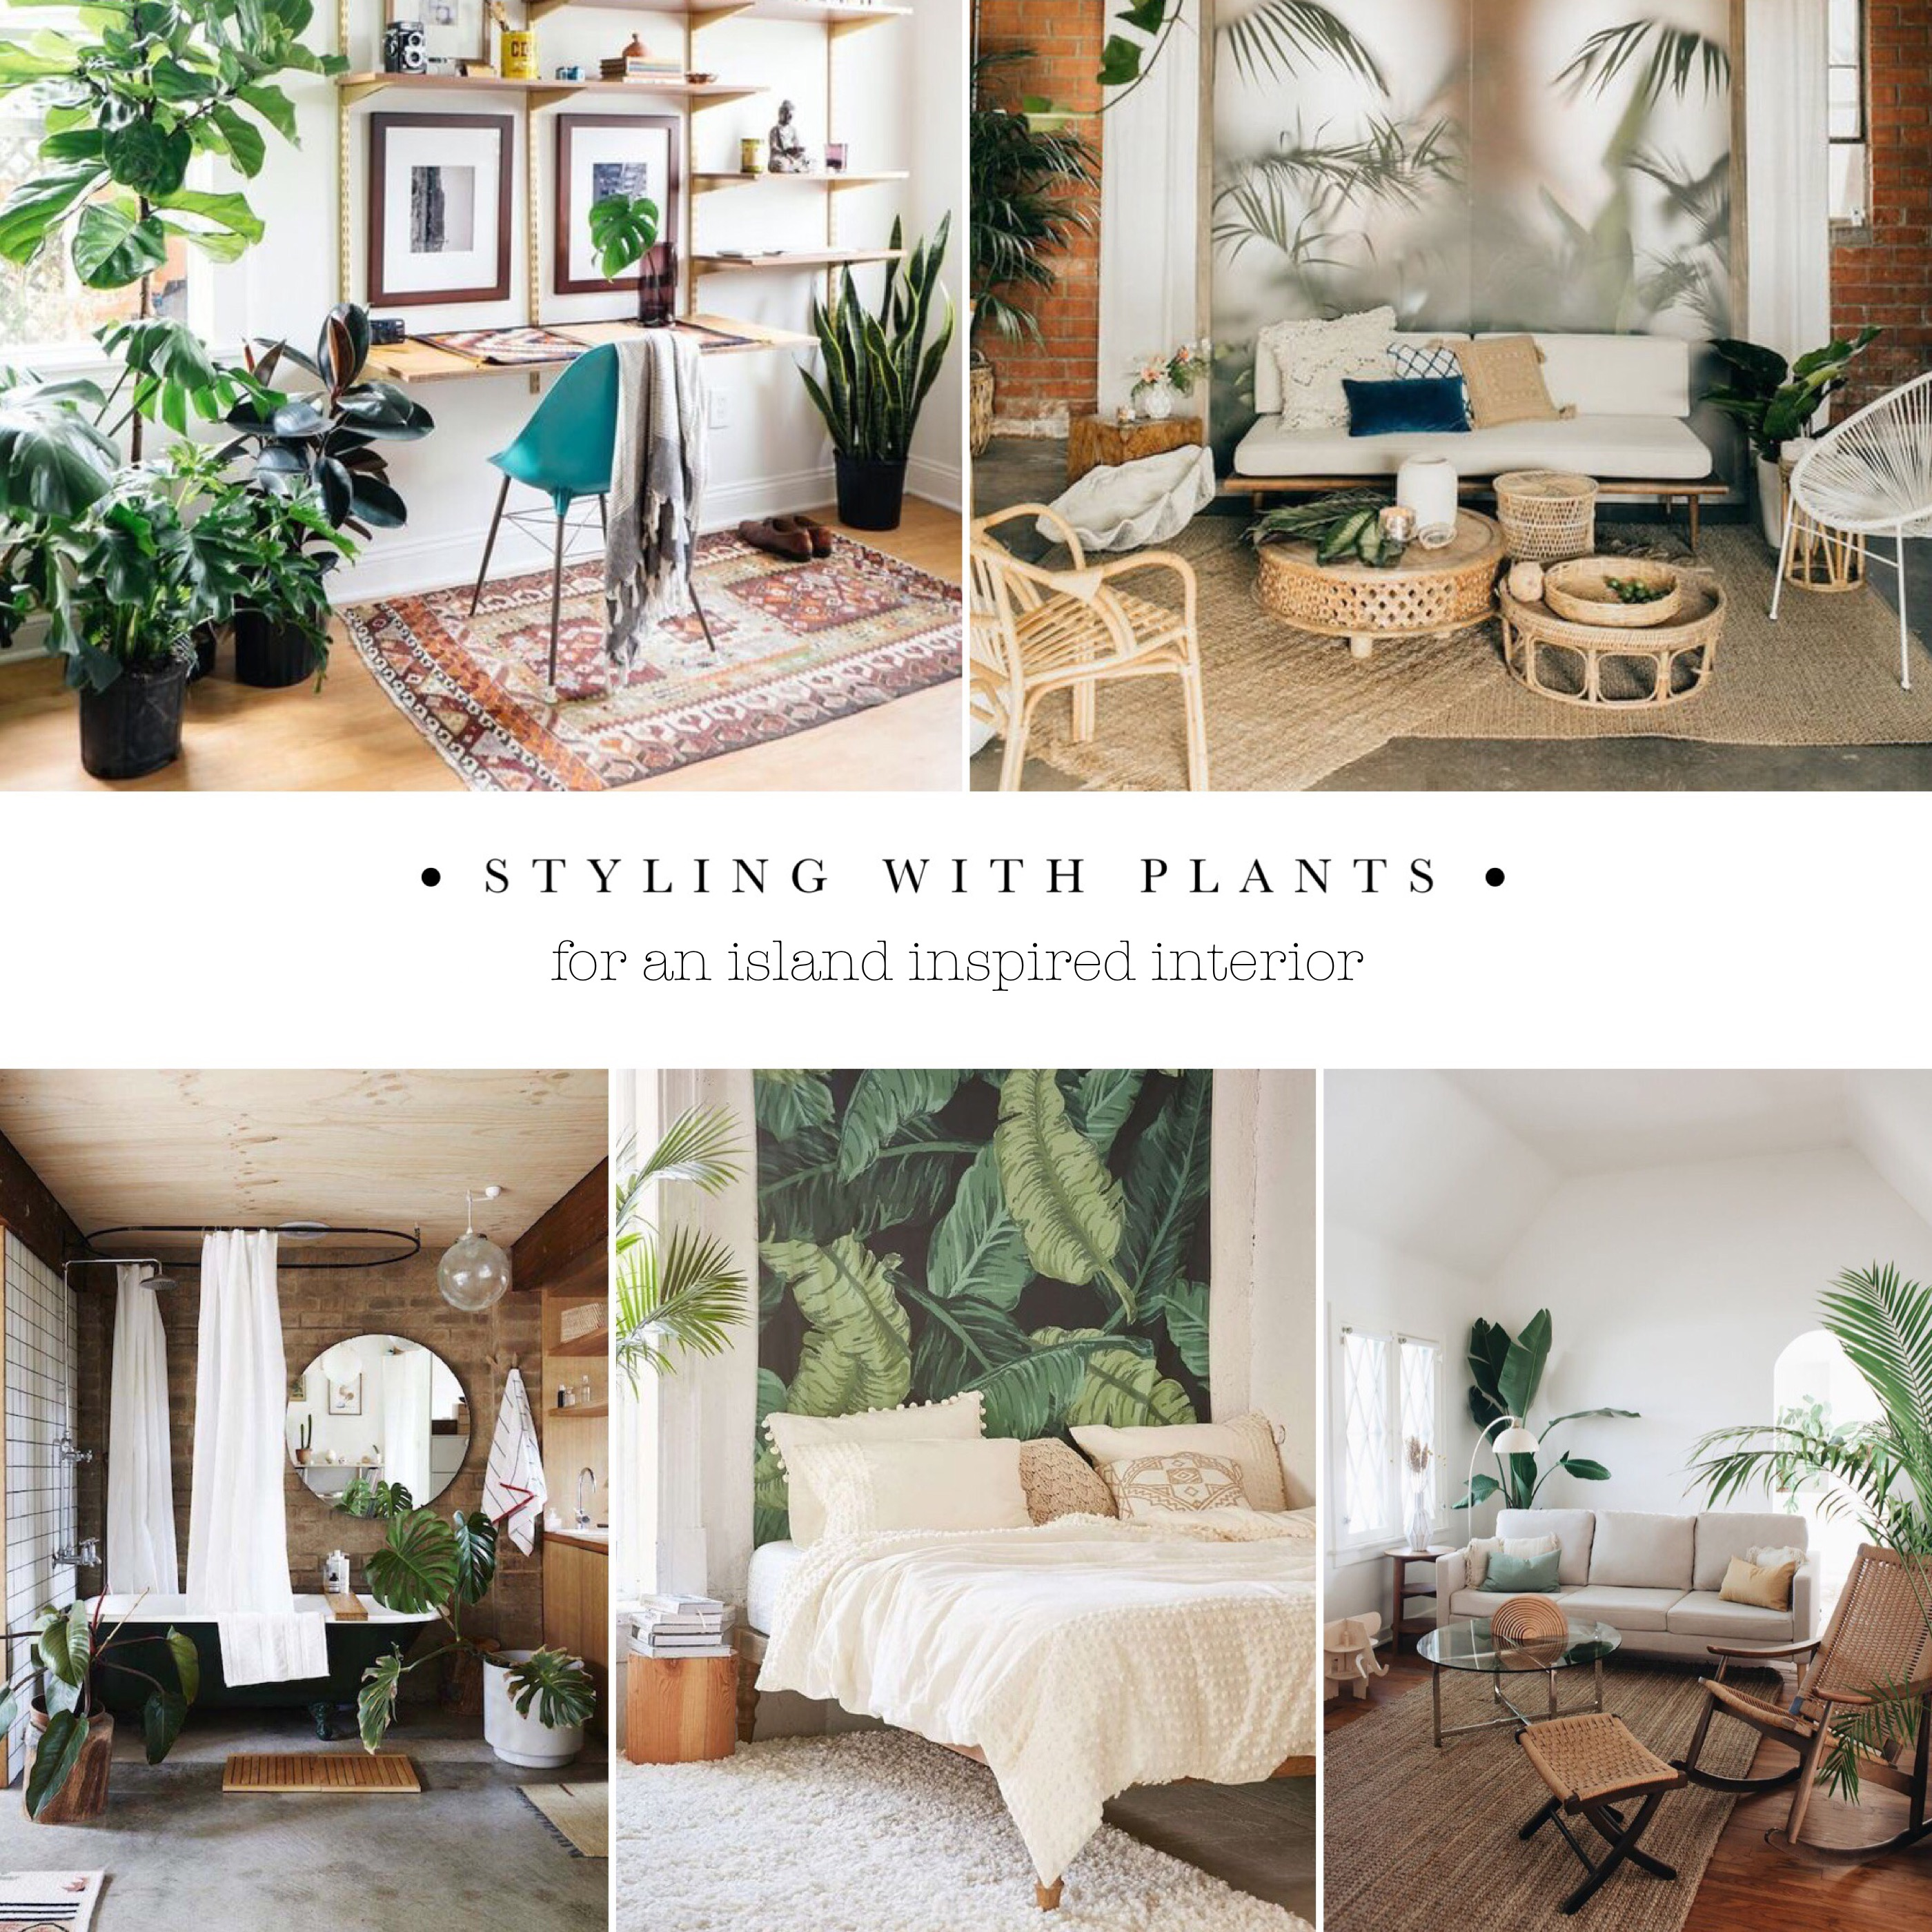 Styling with plants for an island inspired interior